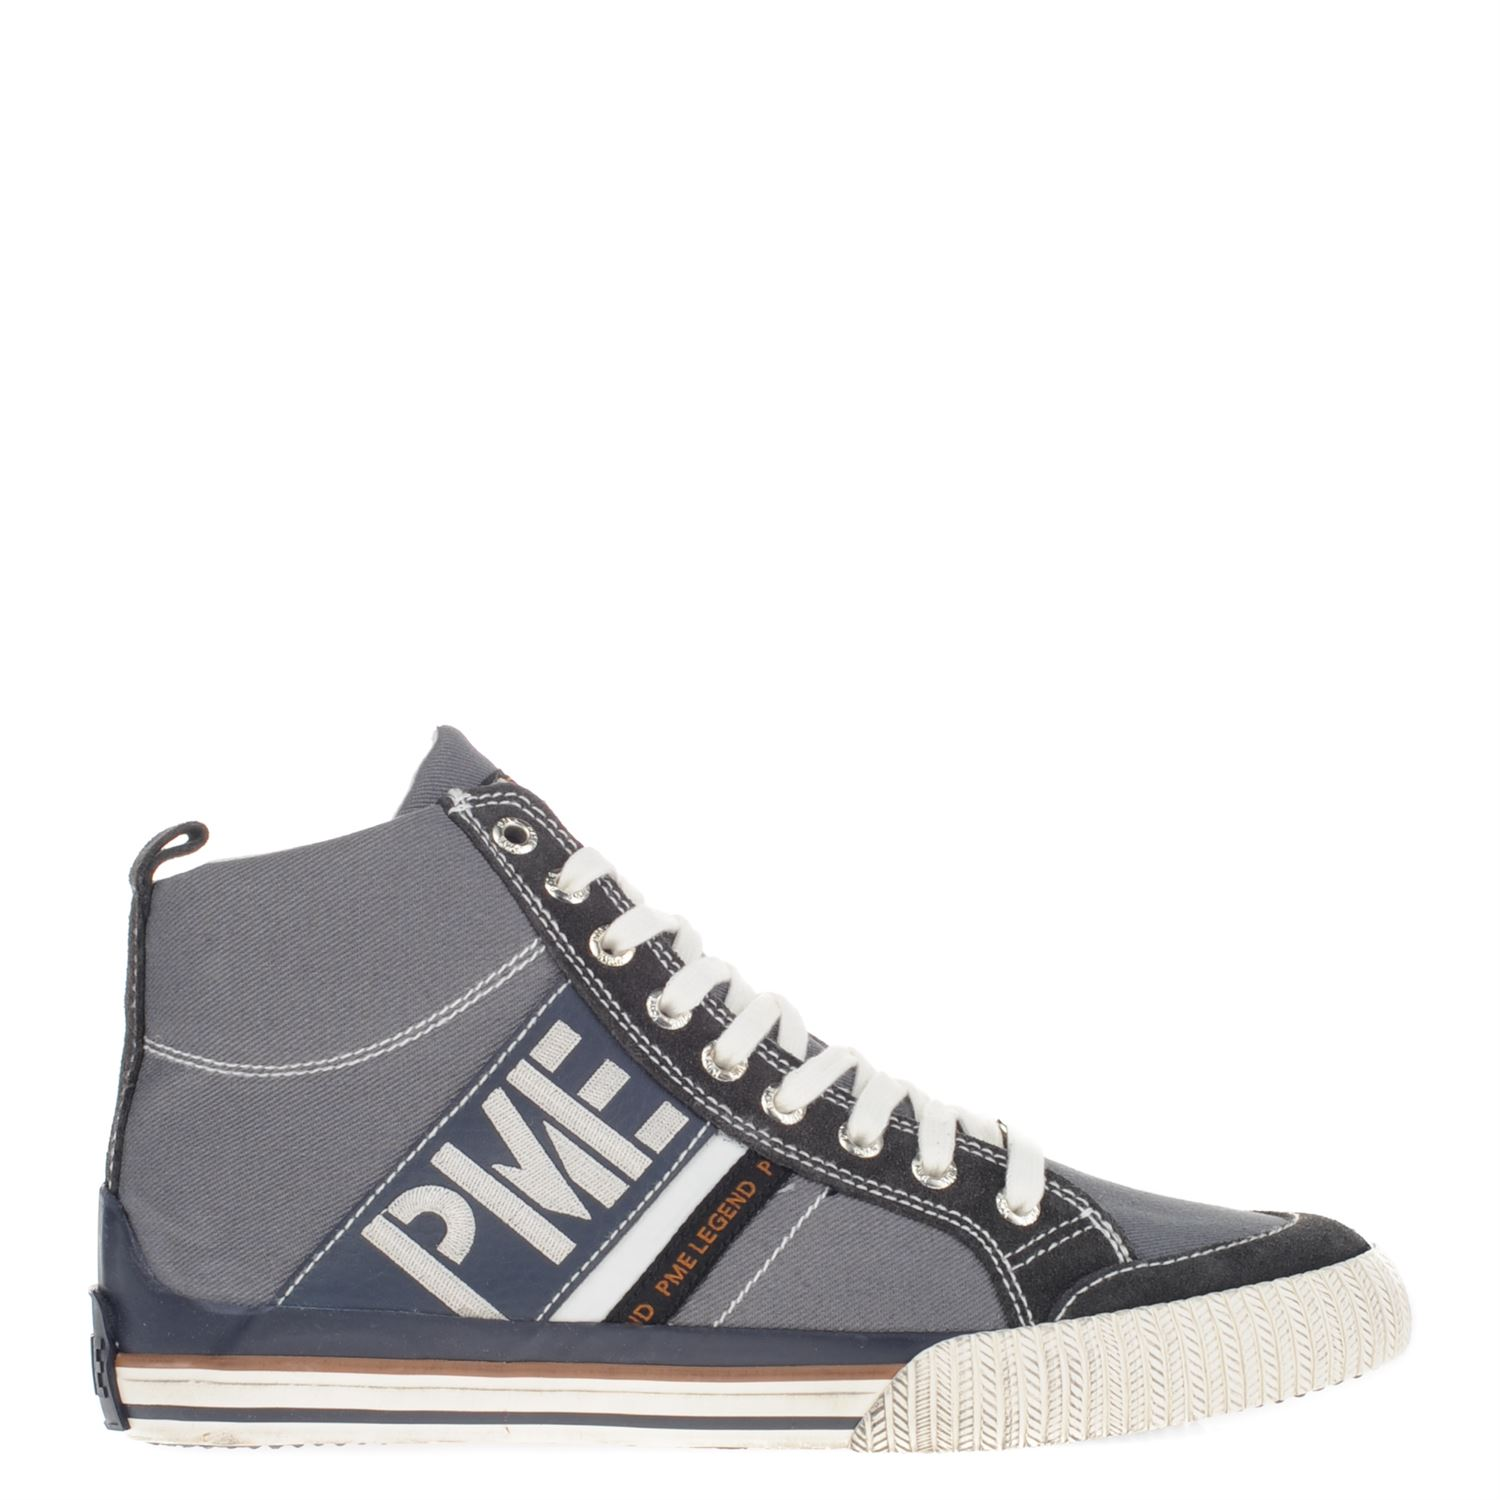 Pall Mall Sneakers RIV24 TLYP